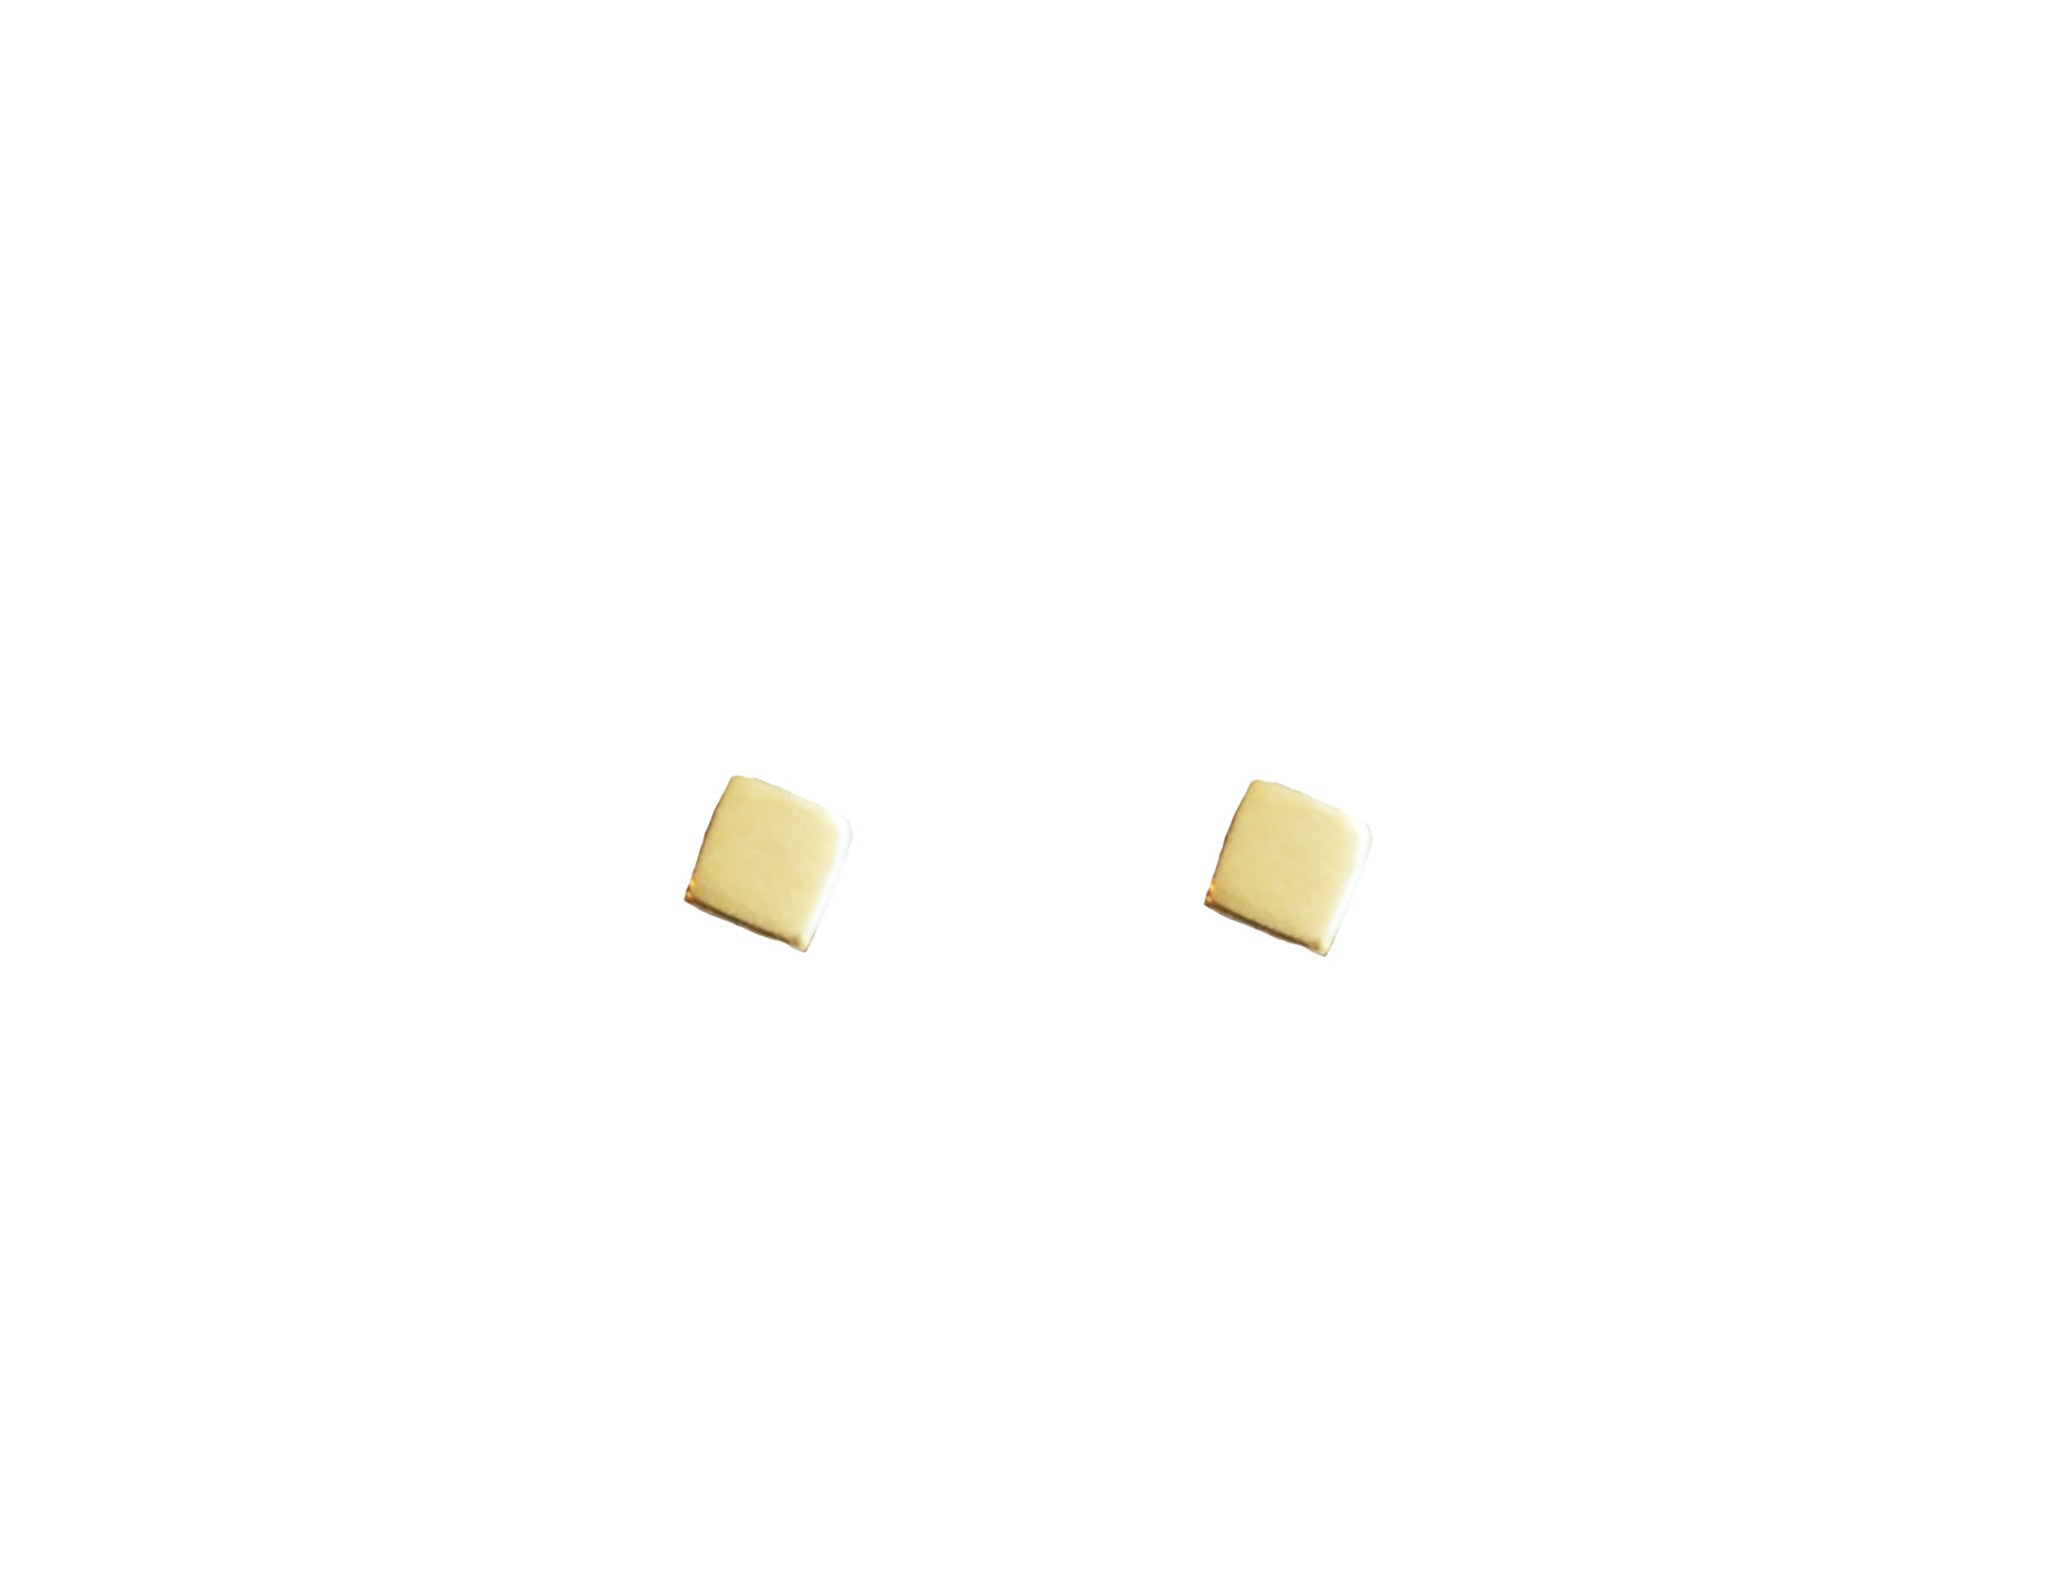 Small Square Stud Earrings Wendy Nichol Fine Jewelry Designer Handmade in NYC New York City solid 14k Gold Yellow Rose White Sterling Silver Small Tiny Dainty Delicate Second Third Ear Hole Piercing Snug Helix Cartilage